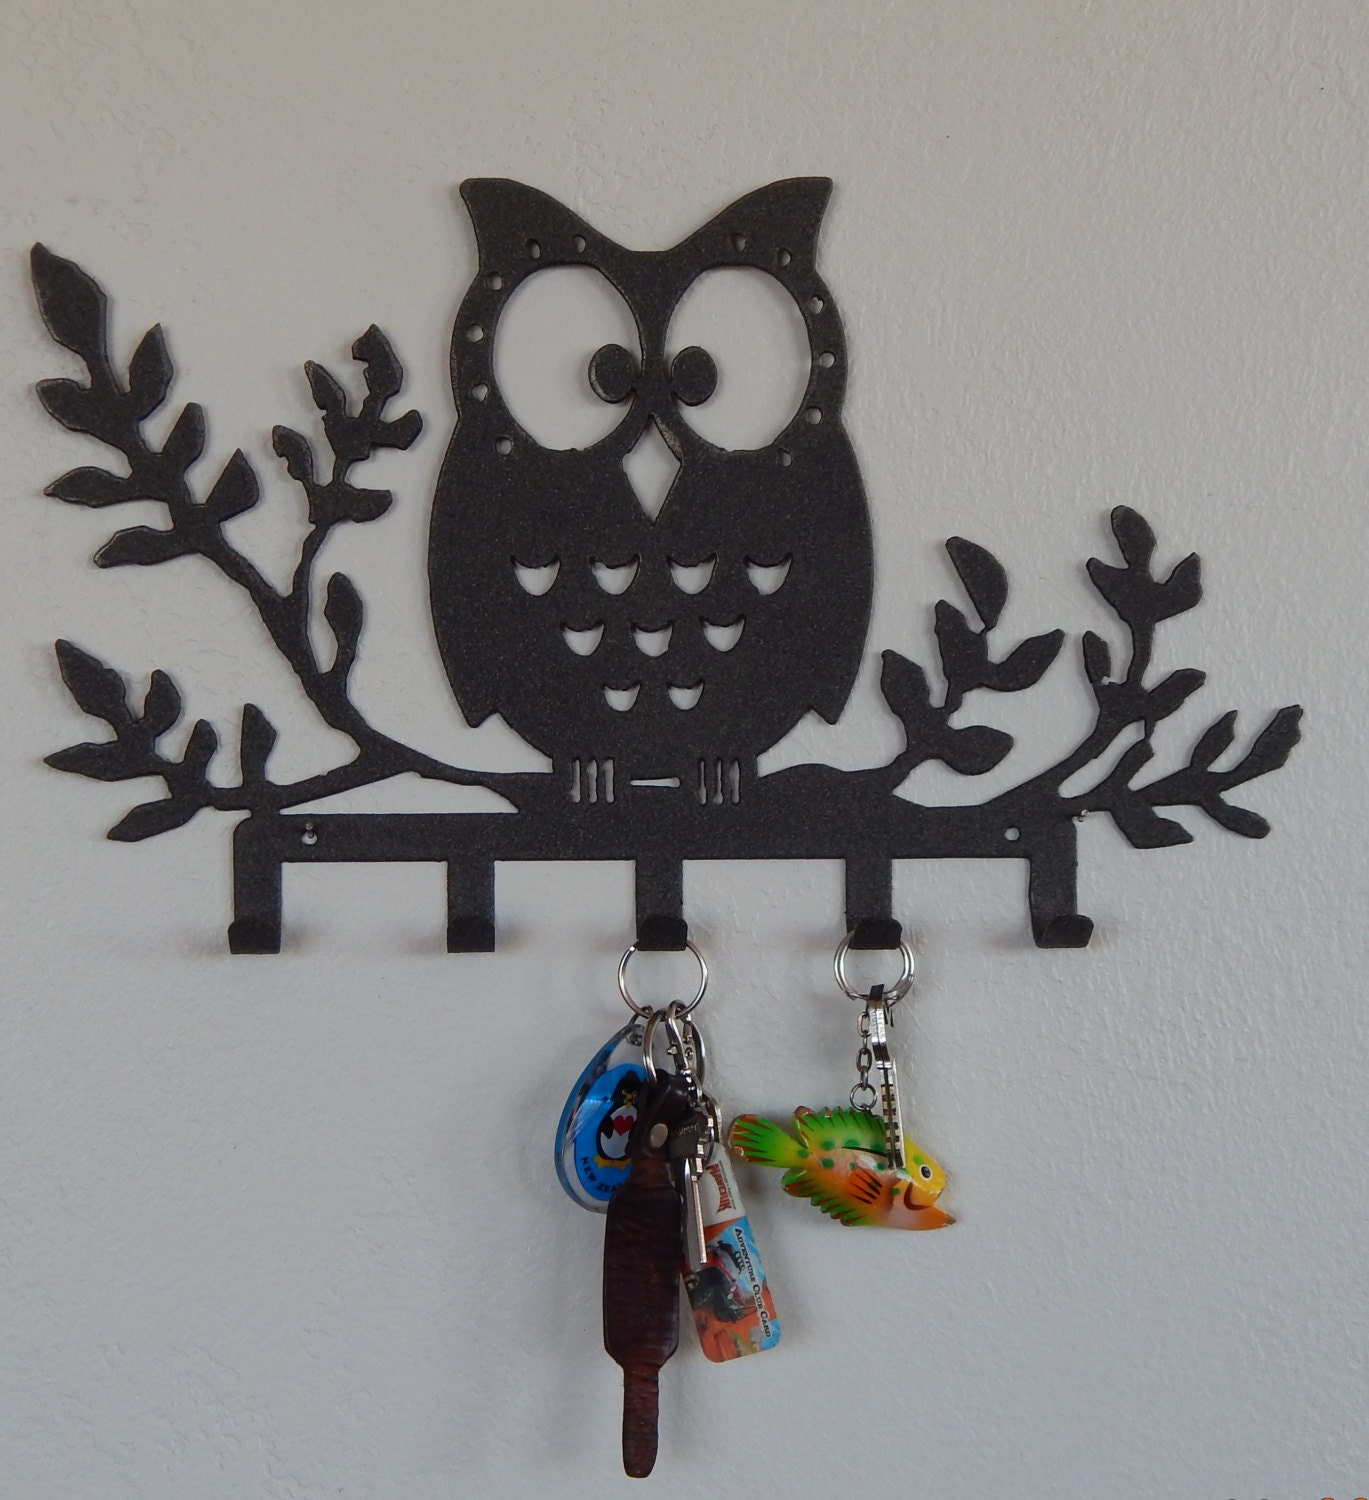 owl key holderowl wall decorkey rackowl wall hookkey hookowl hookkey hook rackowl decorowl giftsowl bedroom decor